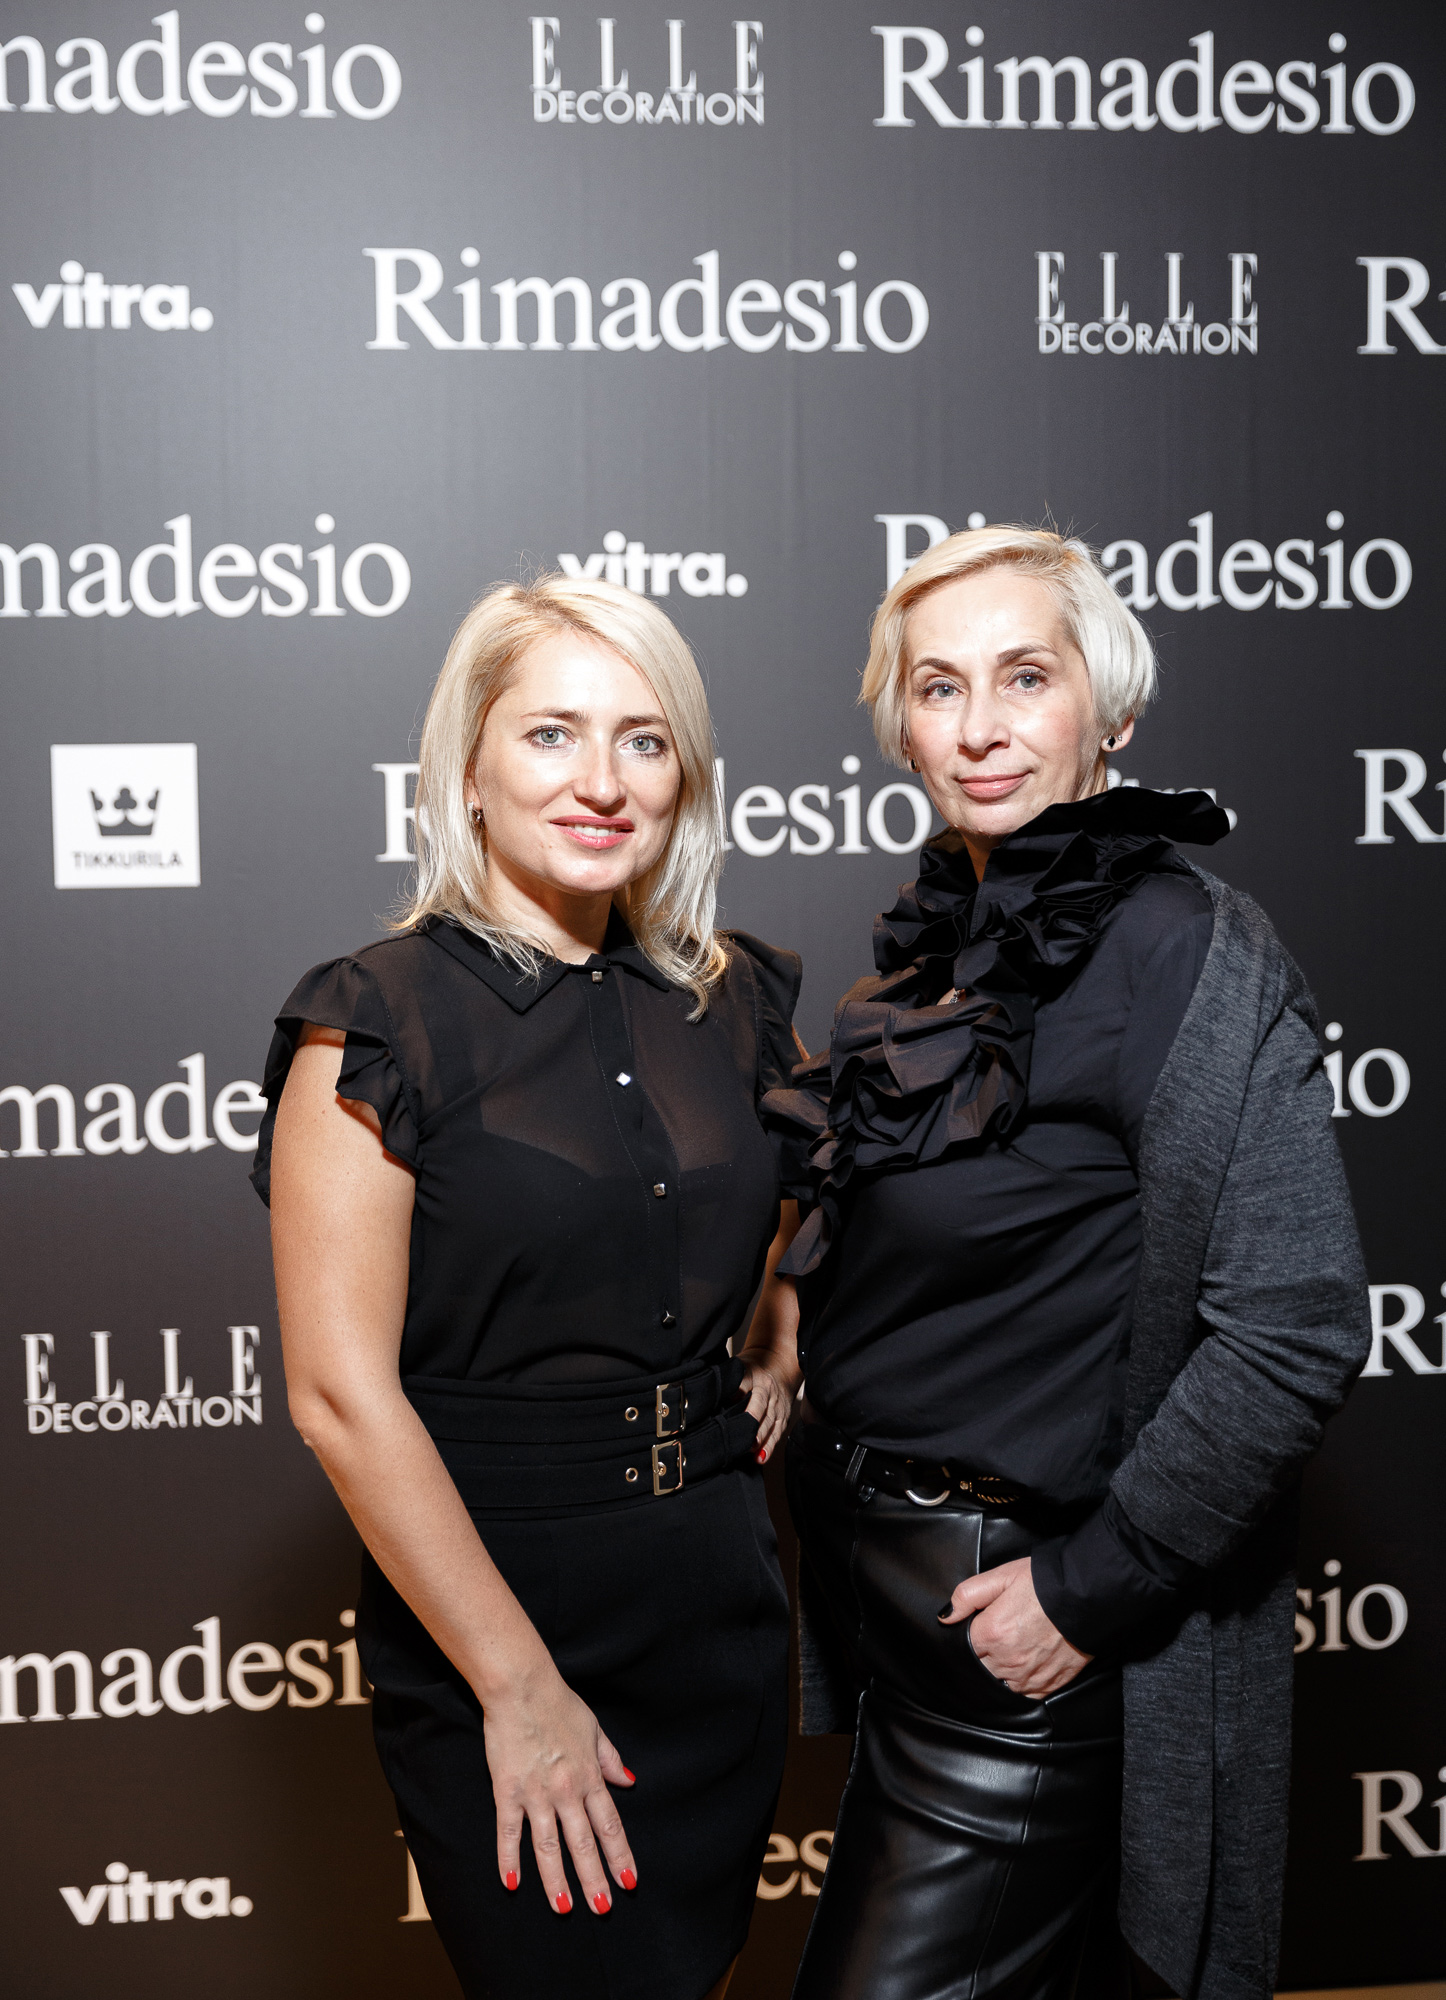 rimadesio-moscow-245